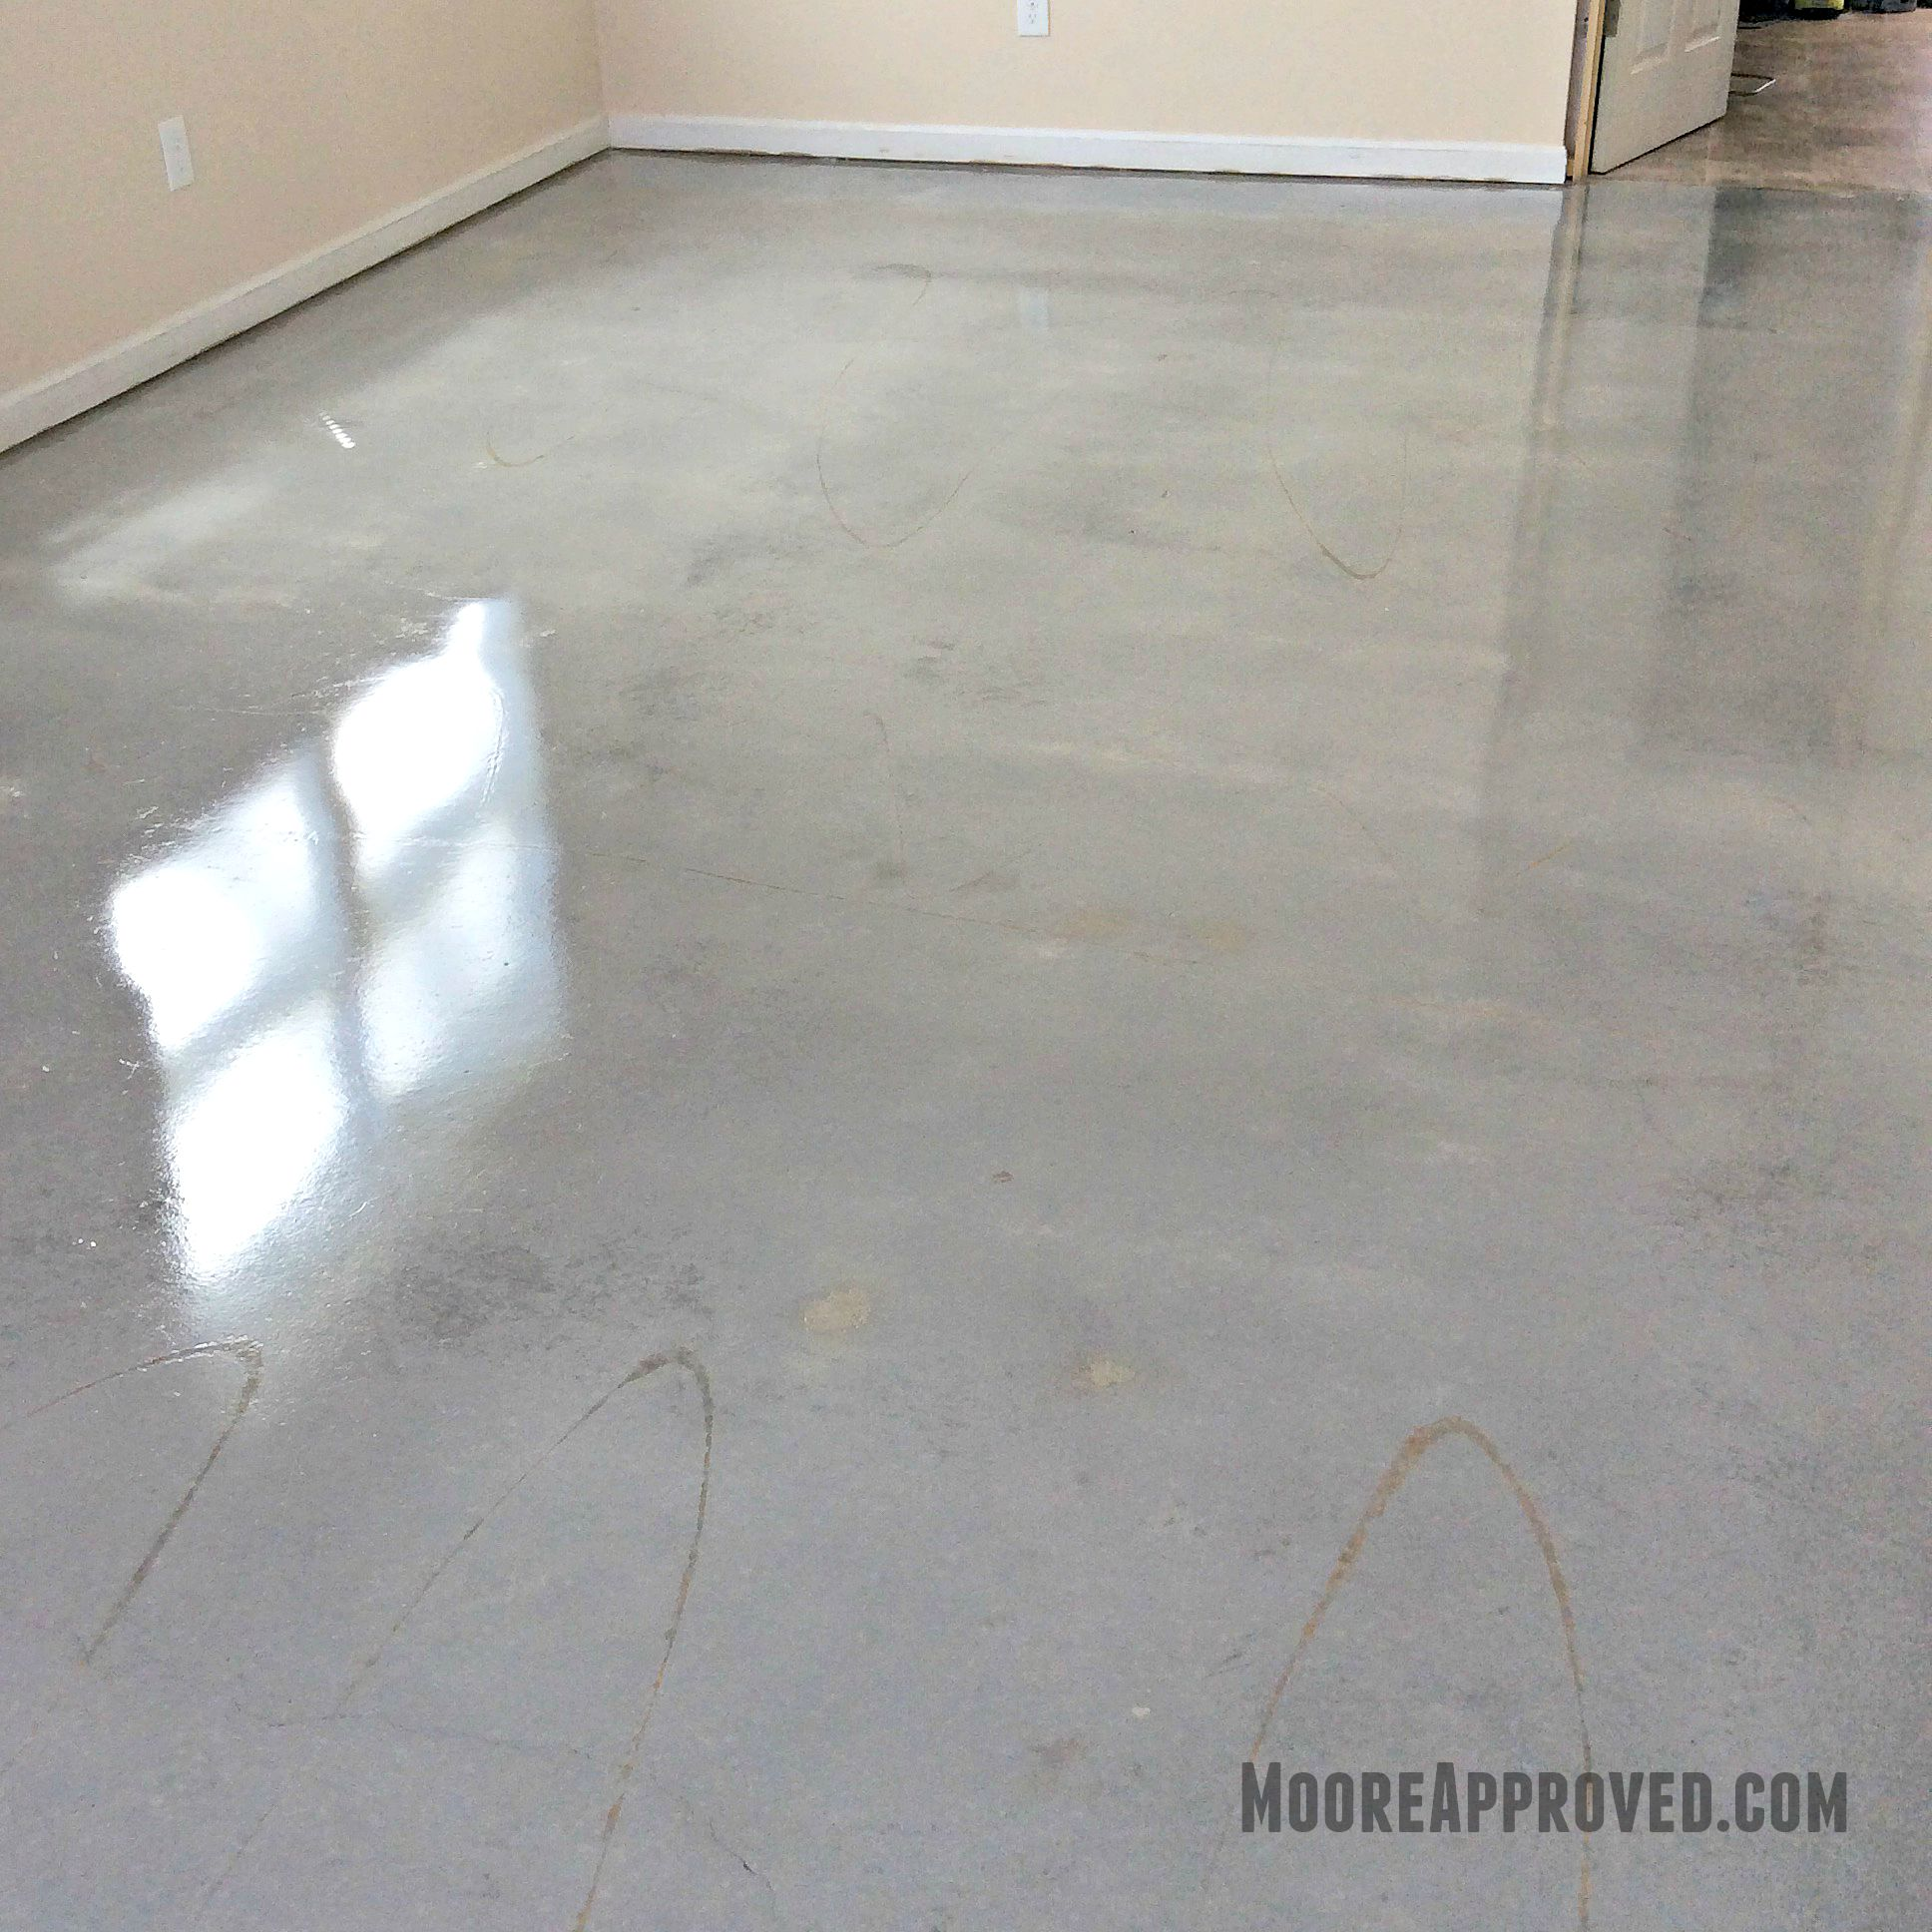 Cleaning cat off concrete floor carpet vidalondon for How to wash concrete floors